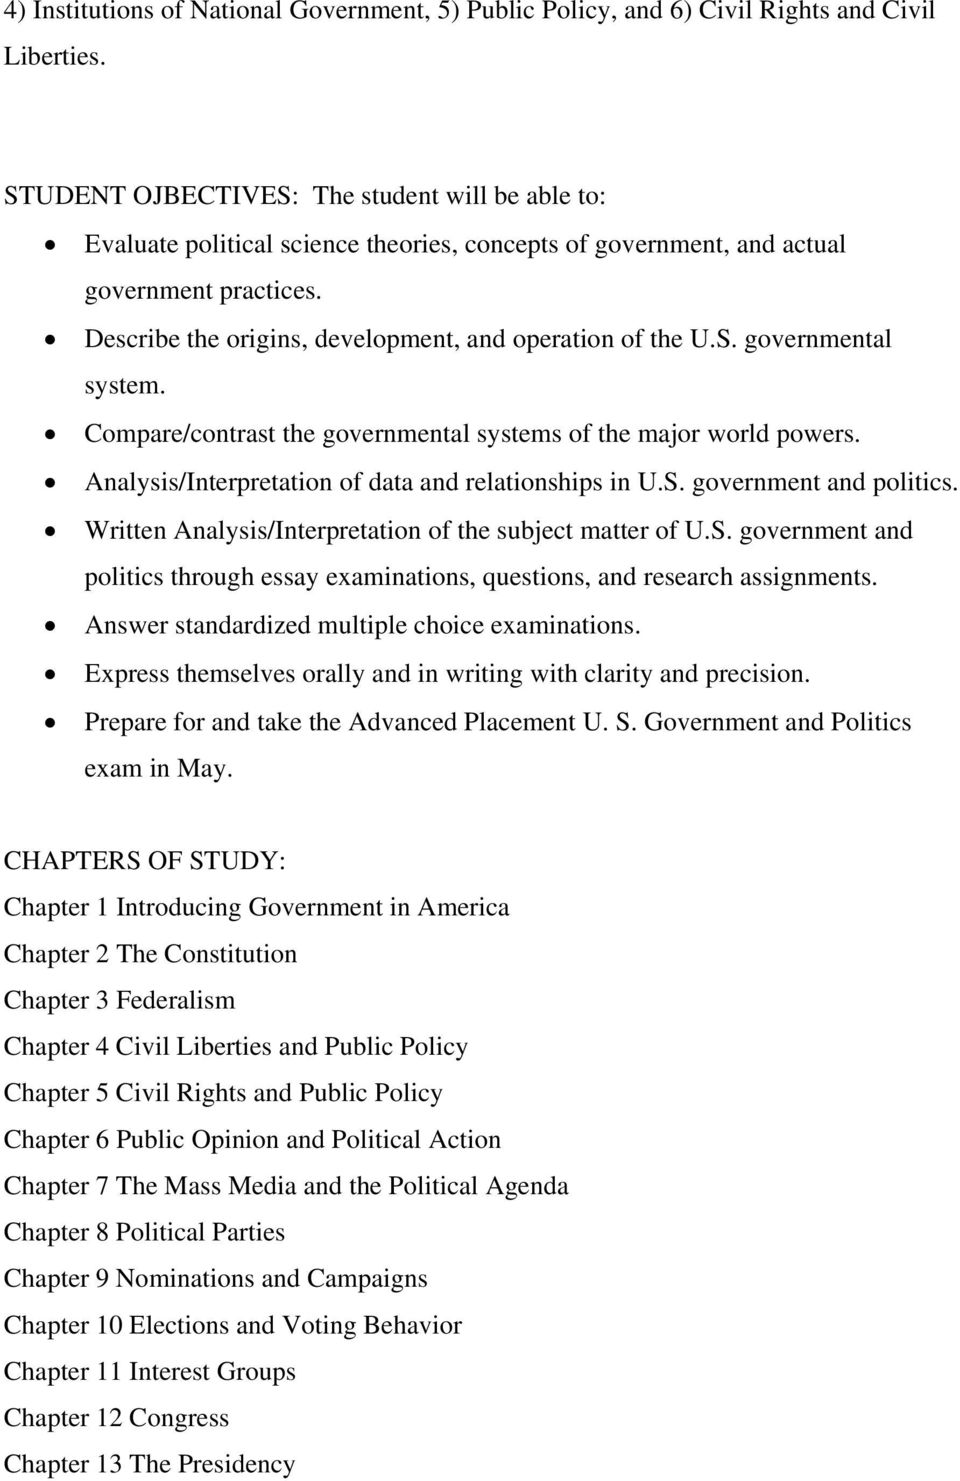 Describe the origins, development, and operation of the U.S. governmental system. Compare/contrast the governmental systems of the major world powers.